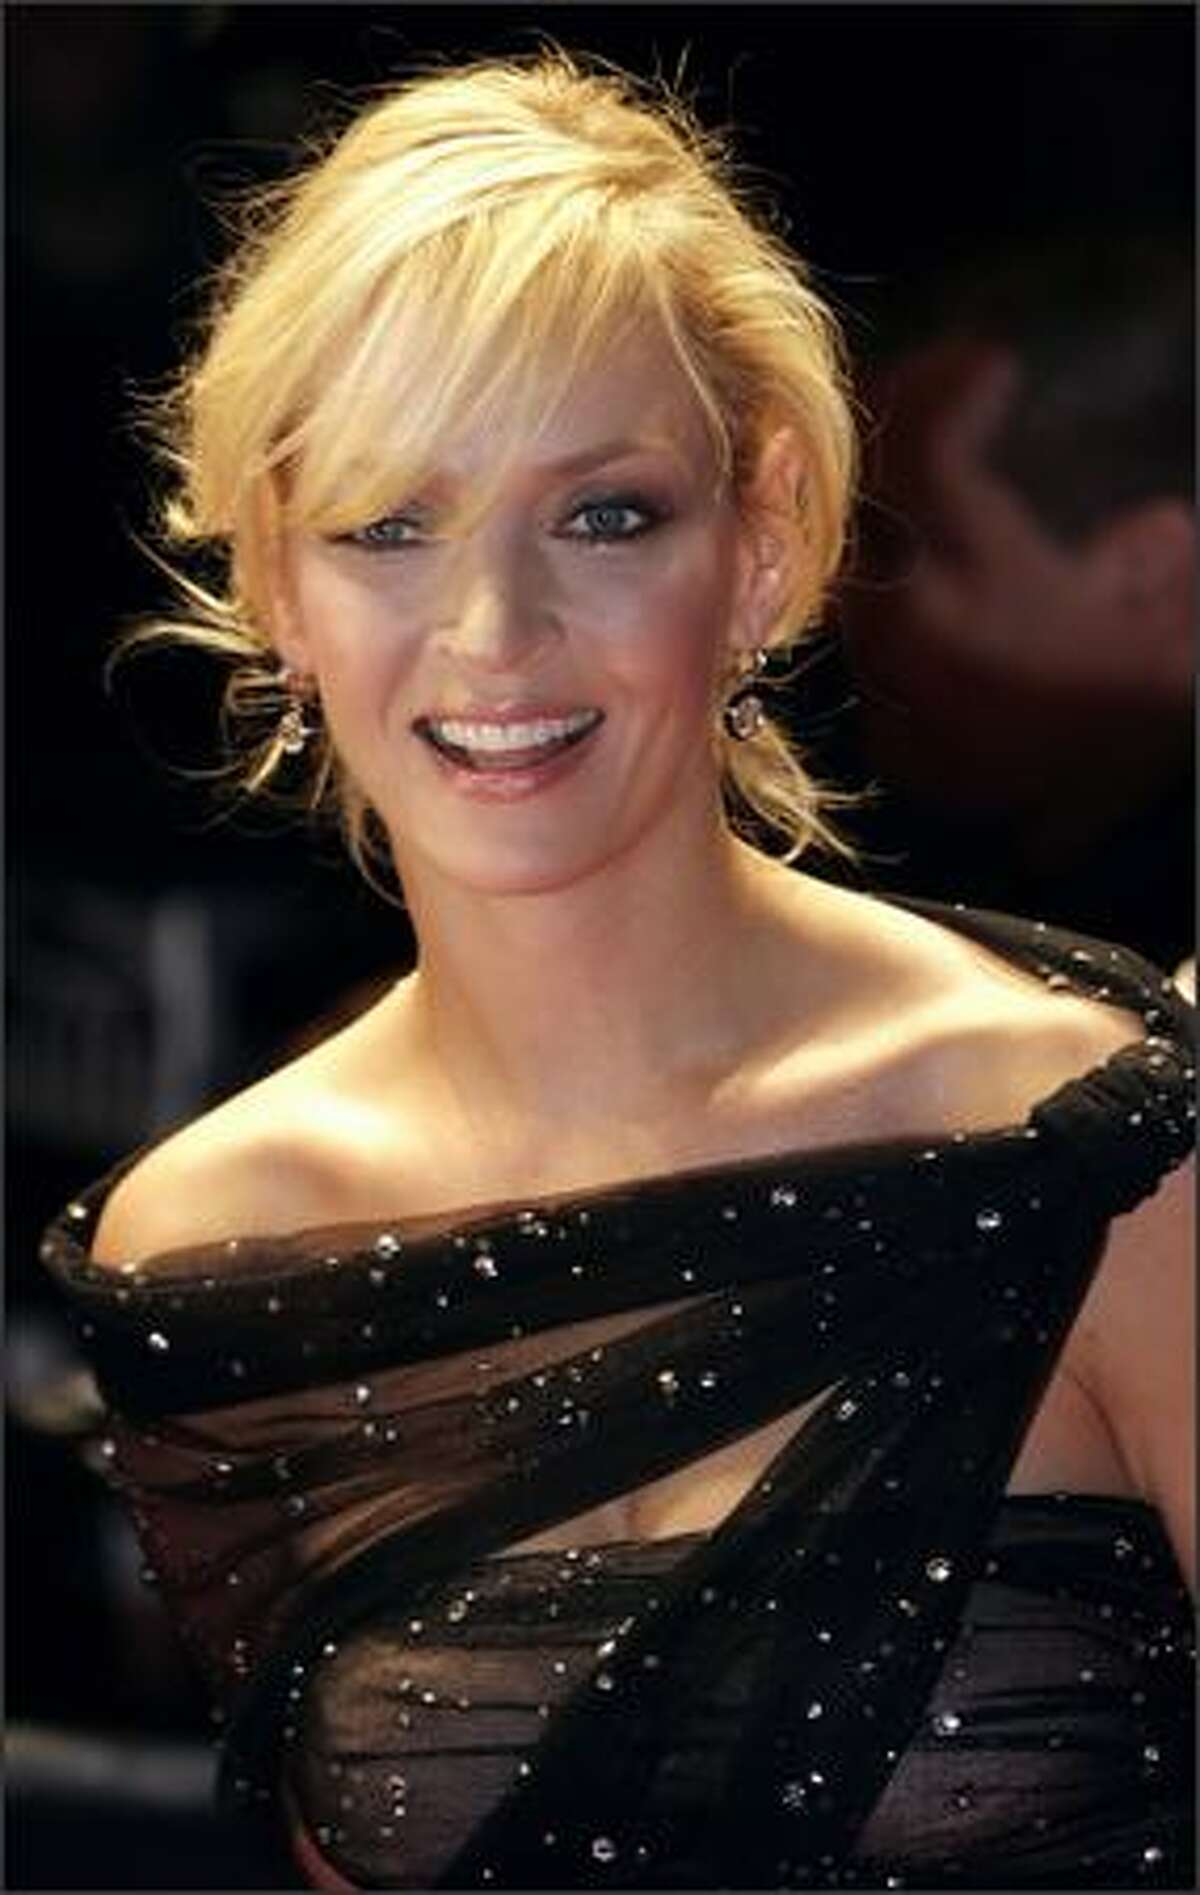 US actress Uma Thurman arrives at the Fashion Rocks for the Princes Trust event at the Royal Albert Hall in London, 18 October 2007. Some of the world?s top fashion designers have paired up with rock and pop stars to showcase their collections at the annual event.